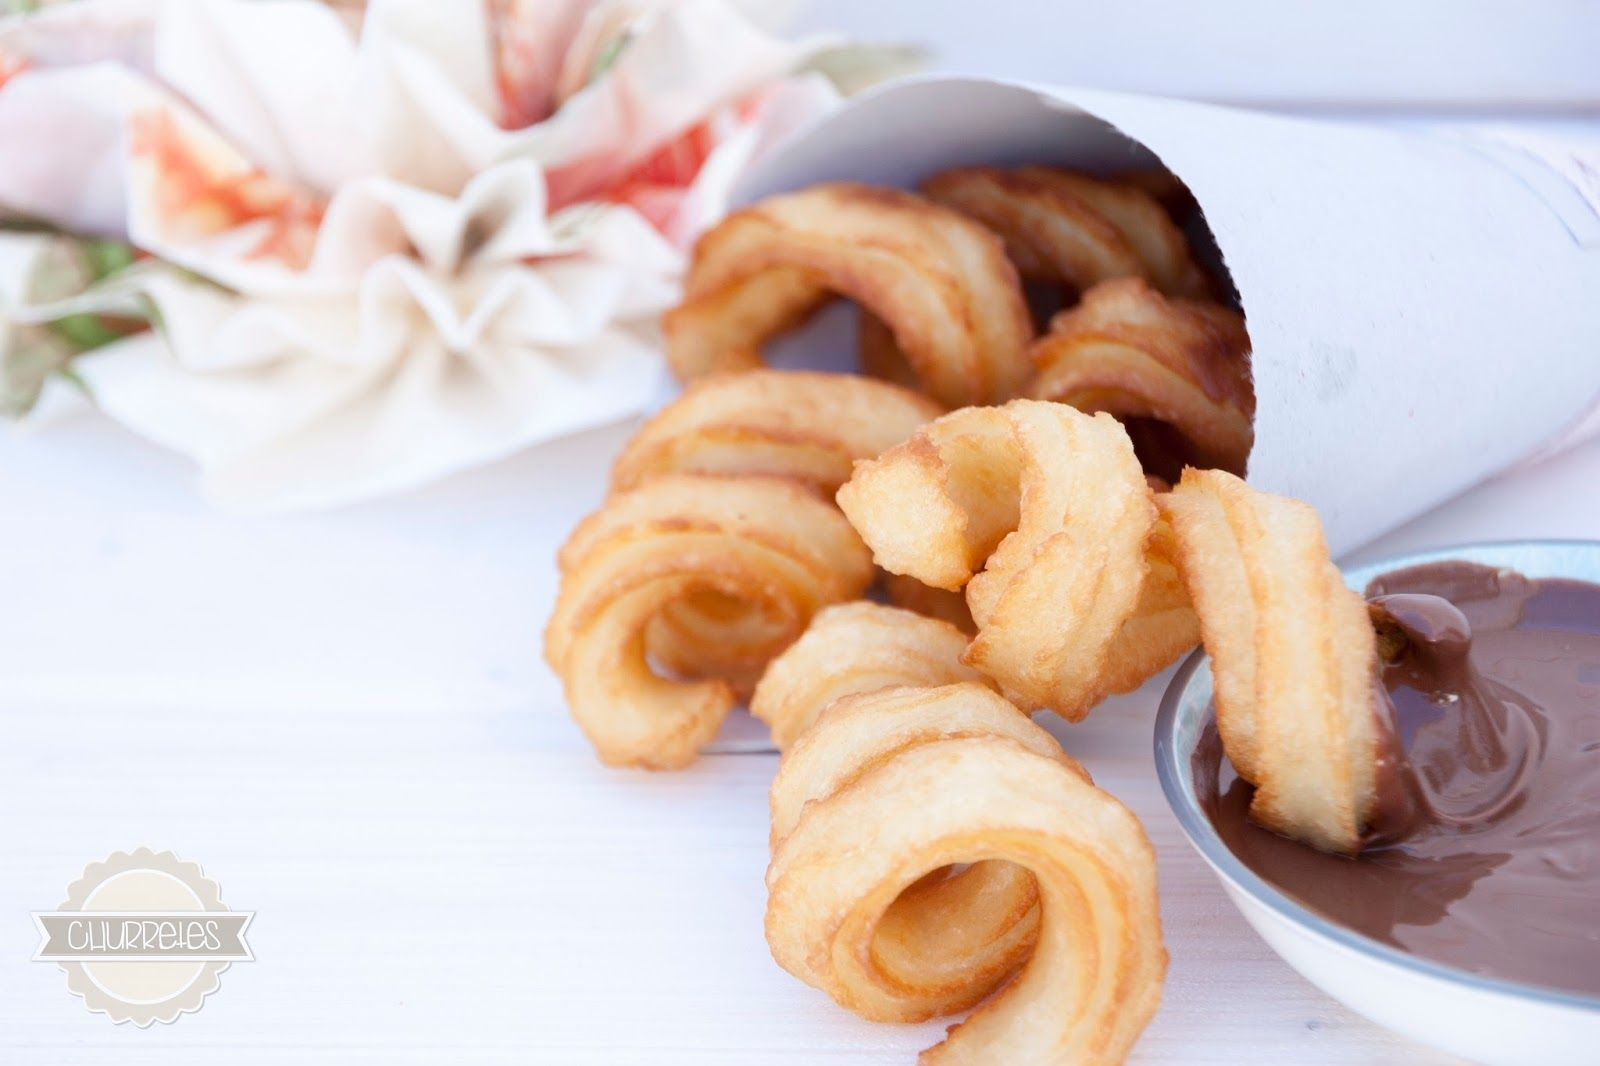 Churretes de Cocholate: CHURROS CON NUTELLA